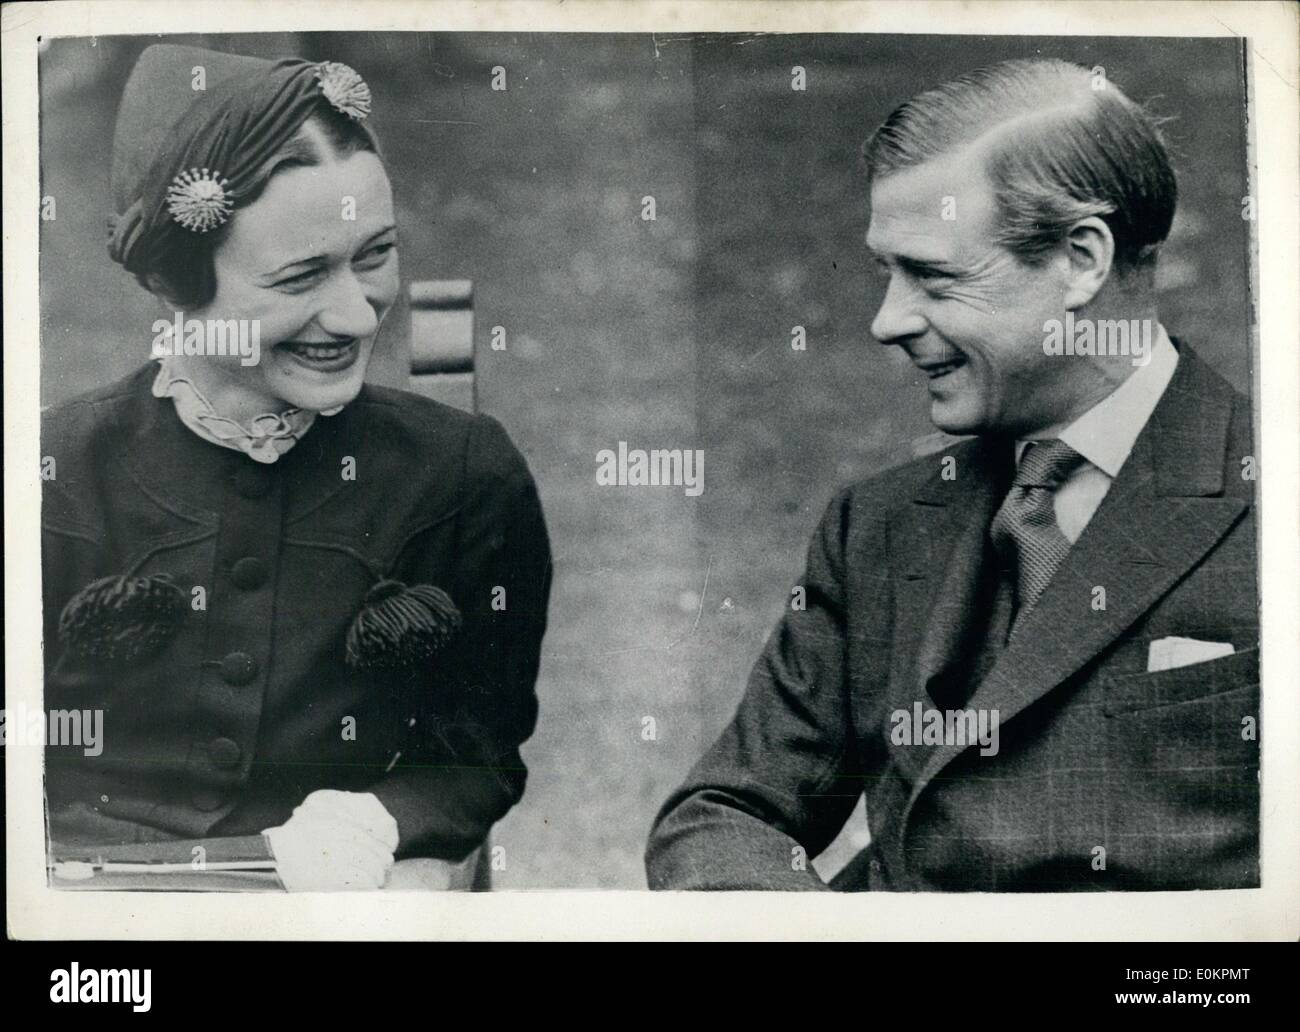 May 05, 1937 - The Duke of Windsor and Mrs Simpson photographed together in the garden of the Chateau de Conde. : - Stock Image